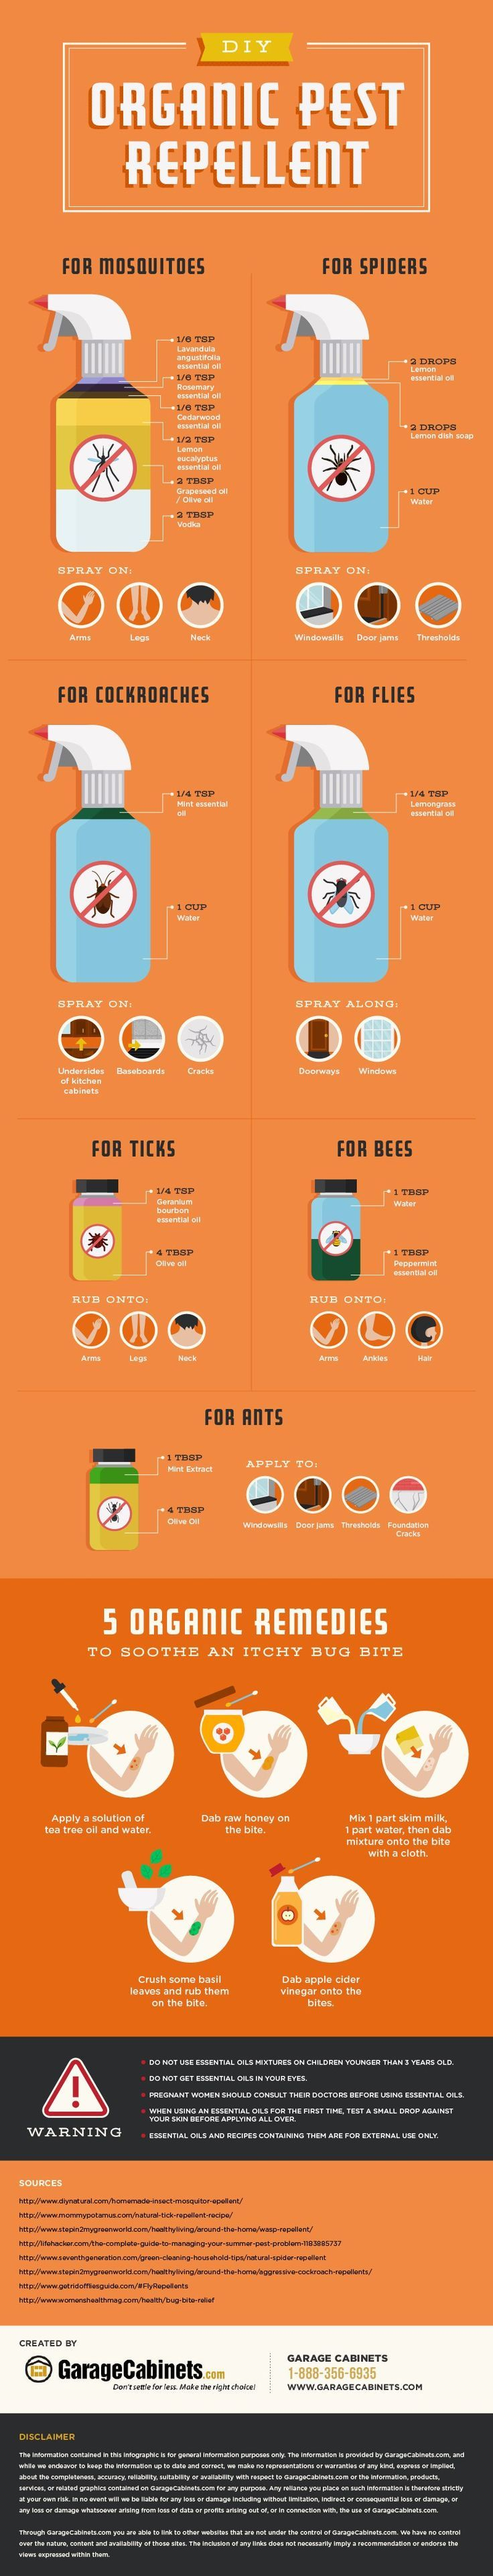 DIY Organic Repellant: How to Keep Bugs Out of Your House and Off Your Skin This Summer | ecogreenlove